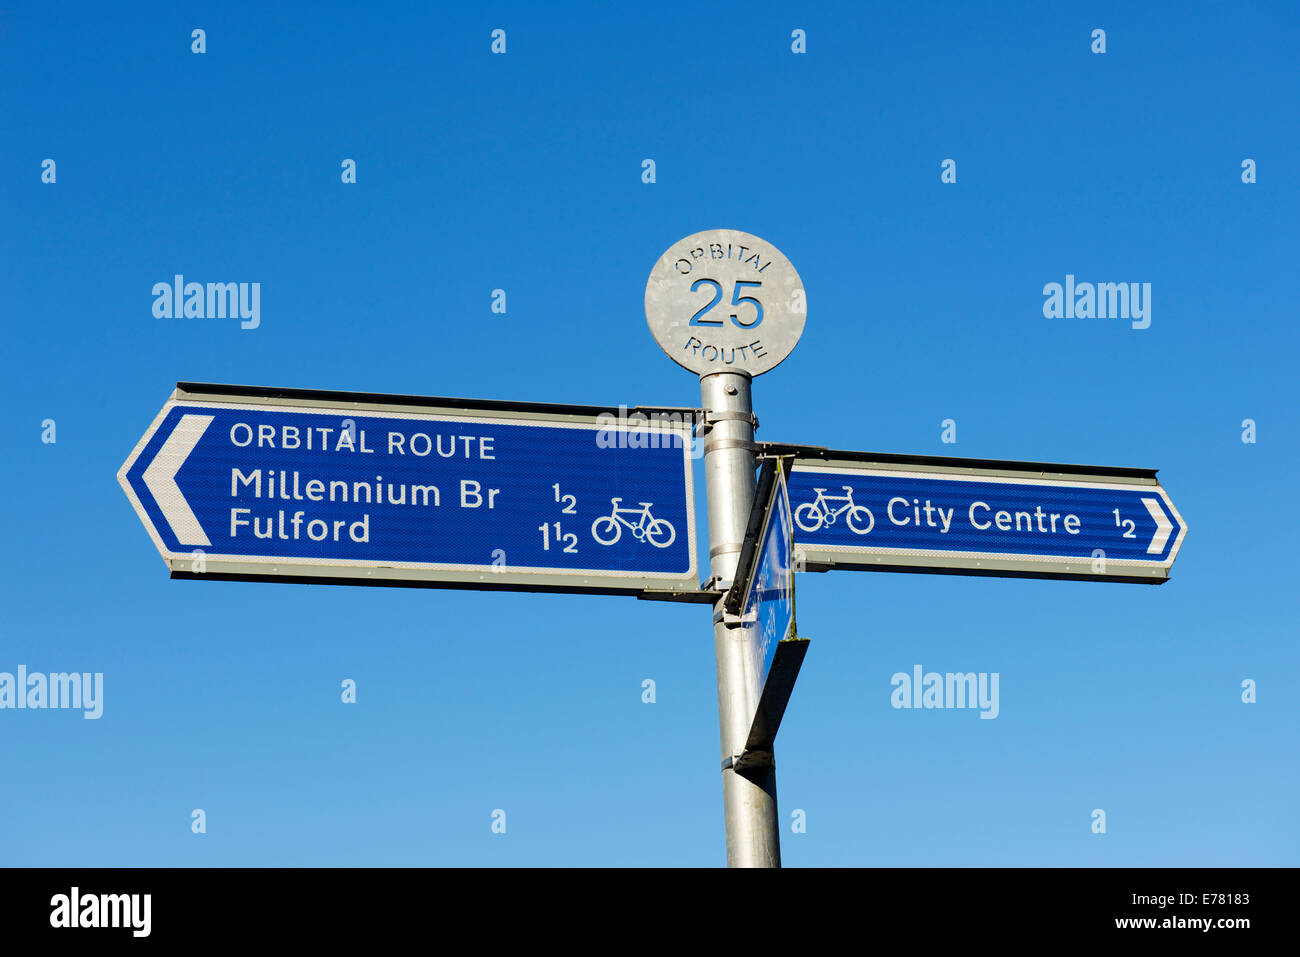 Sign for Orbital cycle route in York, North Yorkshire, England UK - Stock Image